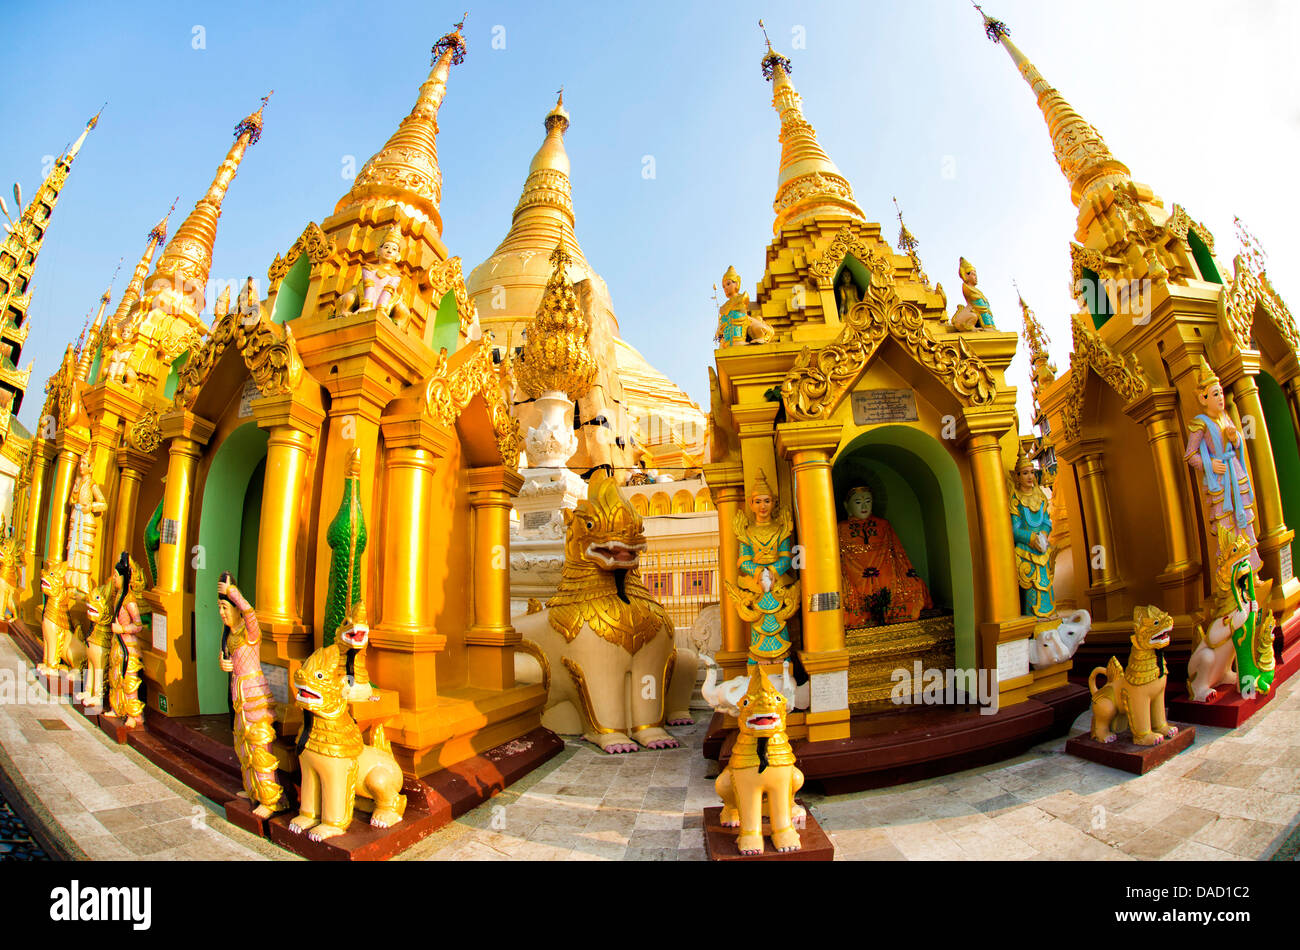 Fisheye image of shrines at Shwedagon Paya (Pagoda), Yangon (Rangoon), Myanmar (Burma), Asia - Stock Image